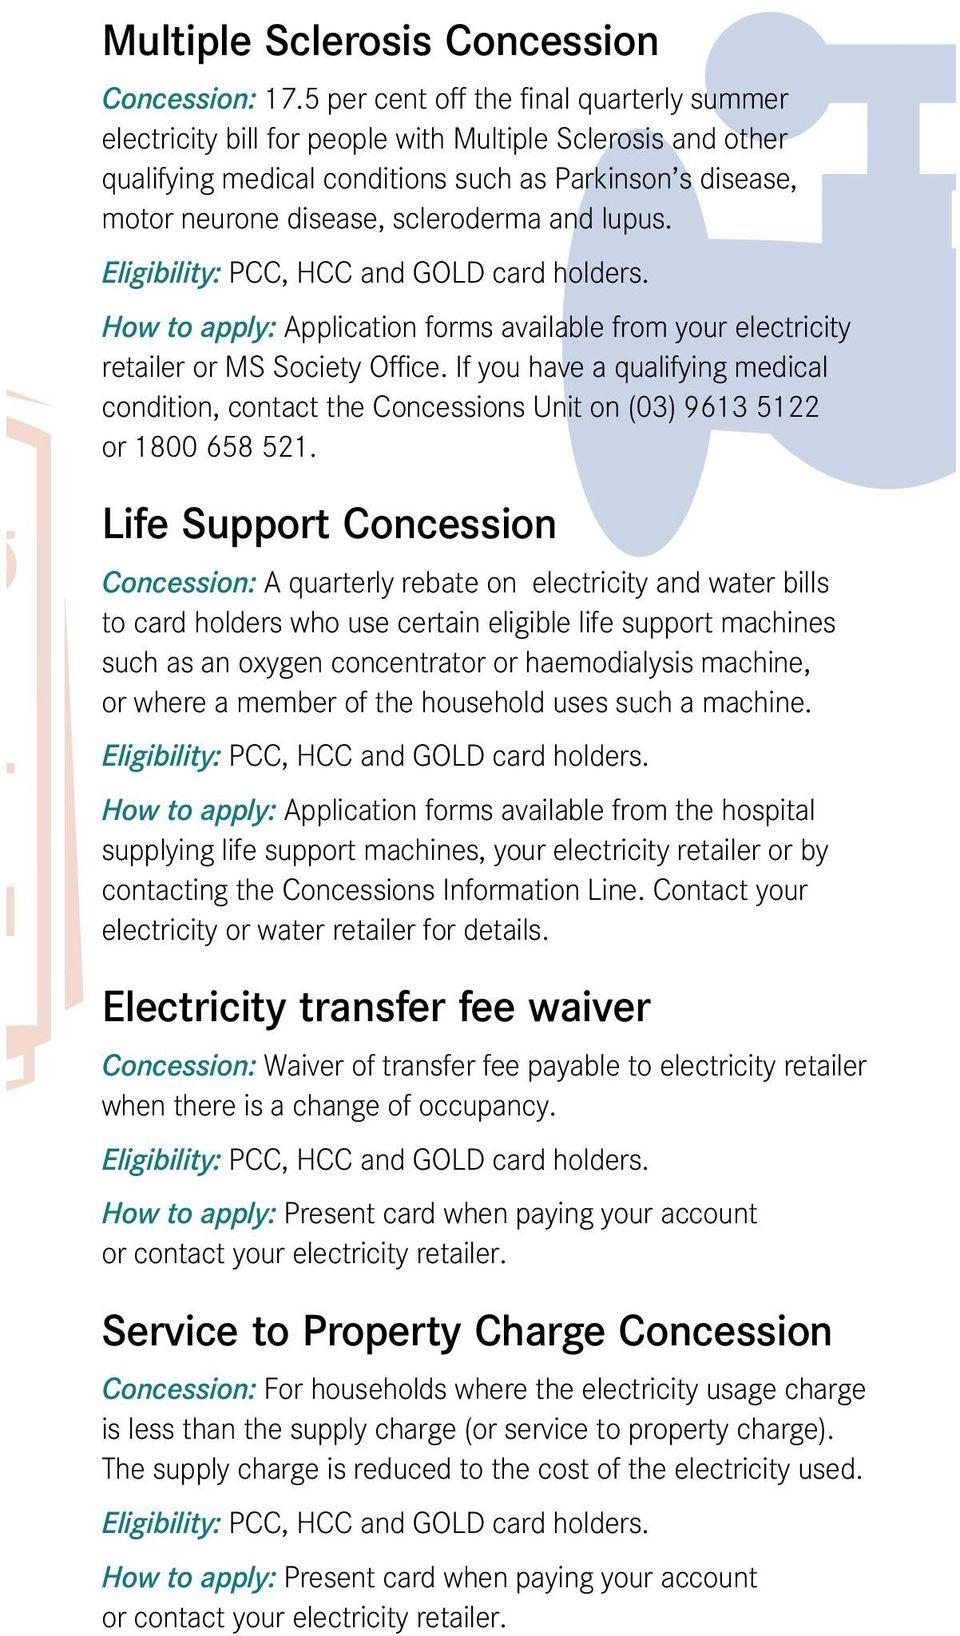 and lupus. How to apply: Application forms available from your electricity retailer or MS Society Office.